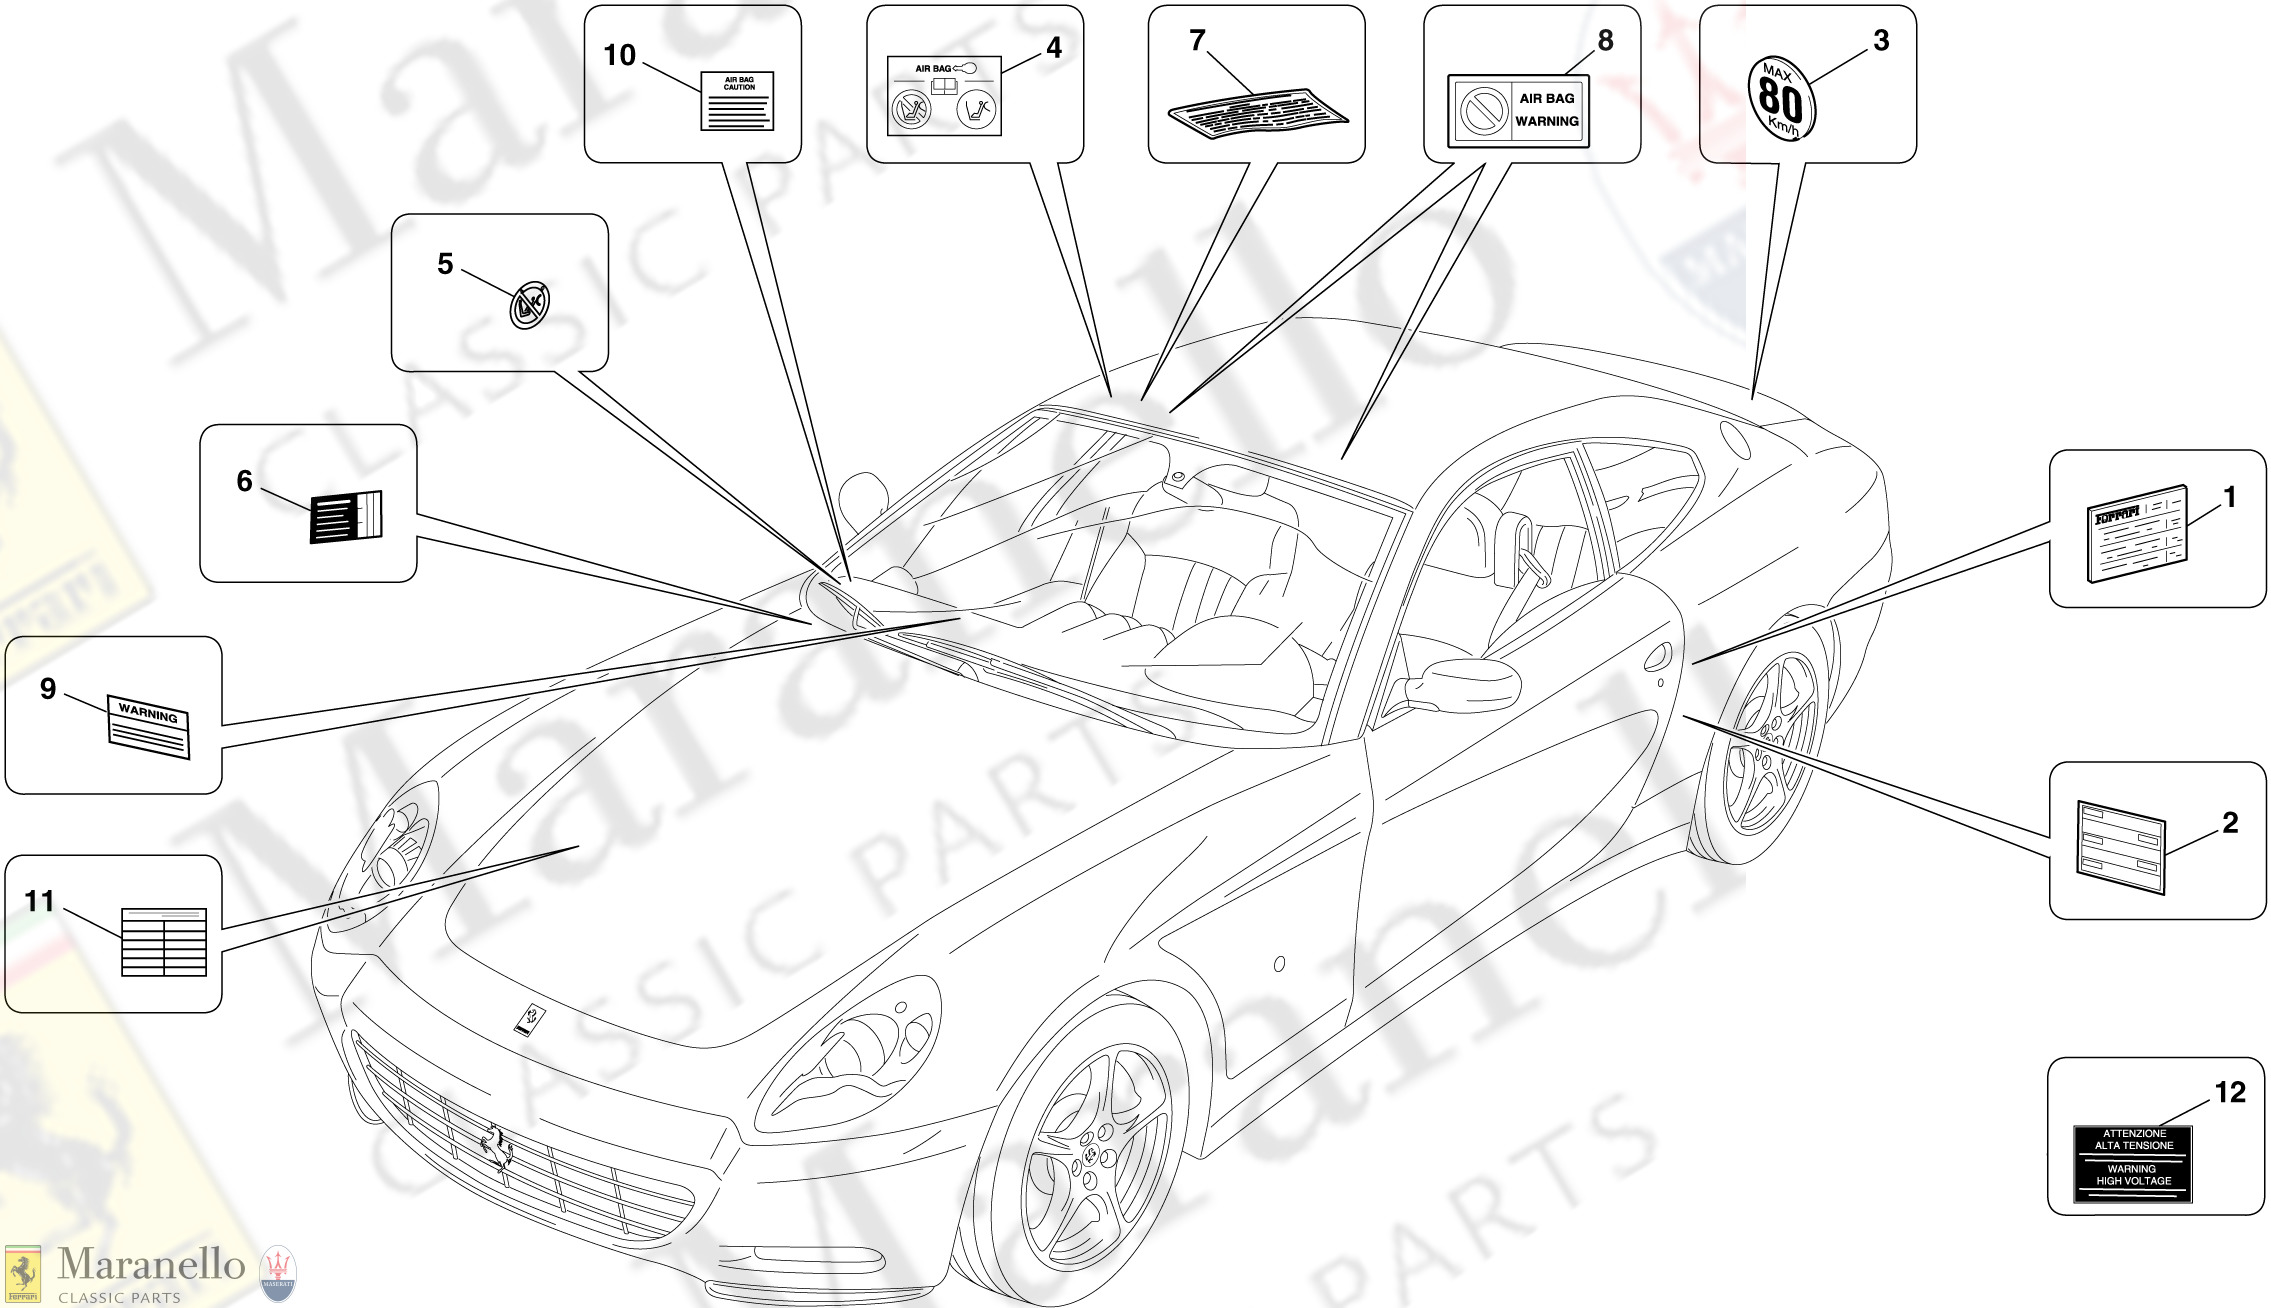 141 - Adhesive Labels And Plaques parts diagram for Ferrari ... Car Diagram With Labels on car diagram without labels, car diagram with titles, car drawing with labels, car parts with labels, car model with labels, motor car with labels, car diagram with parts labeled,